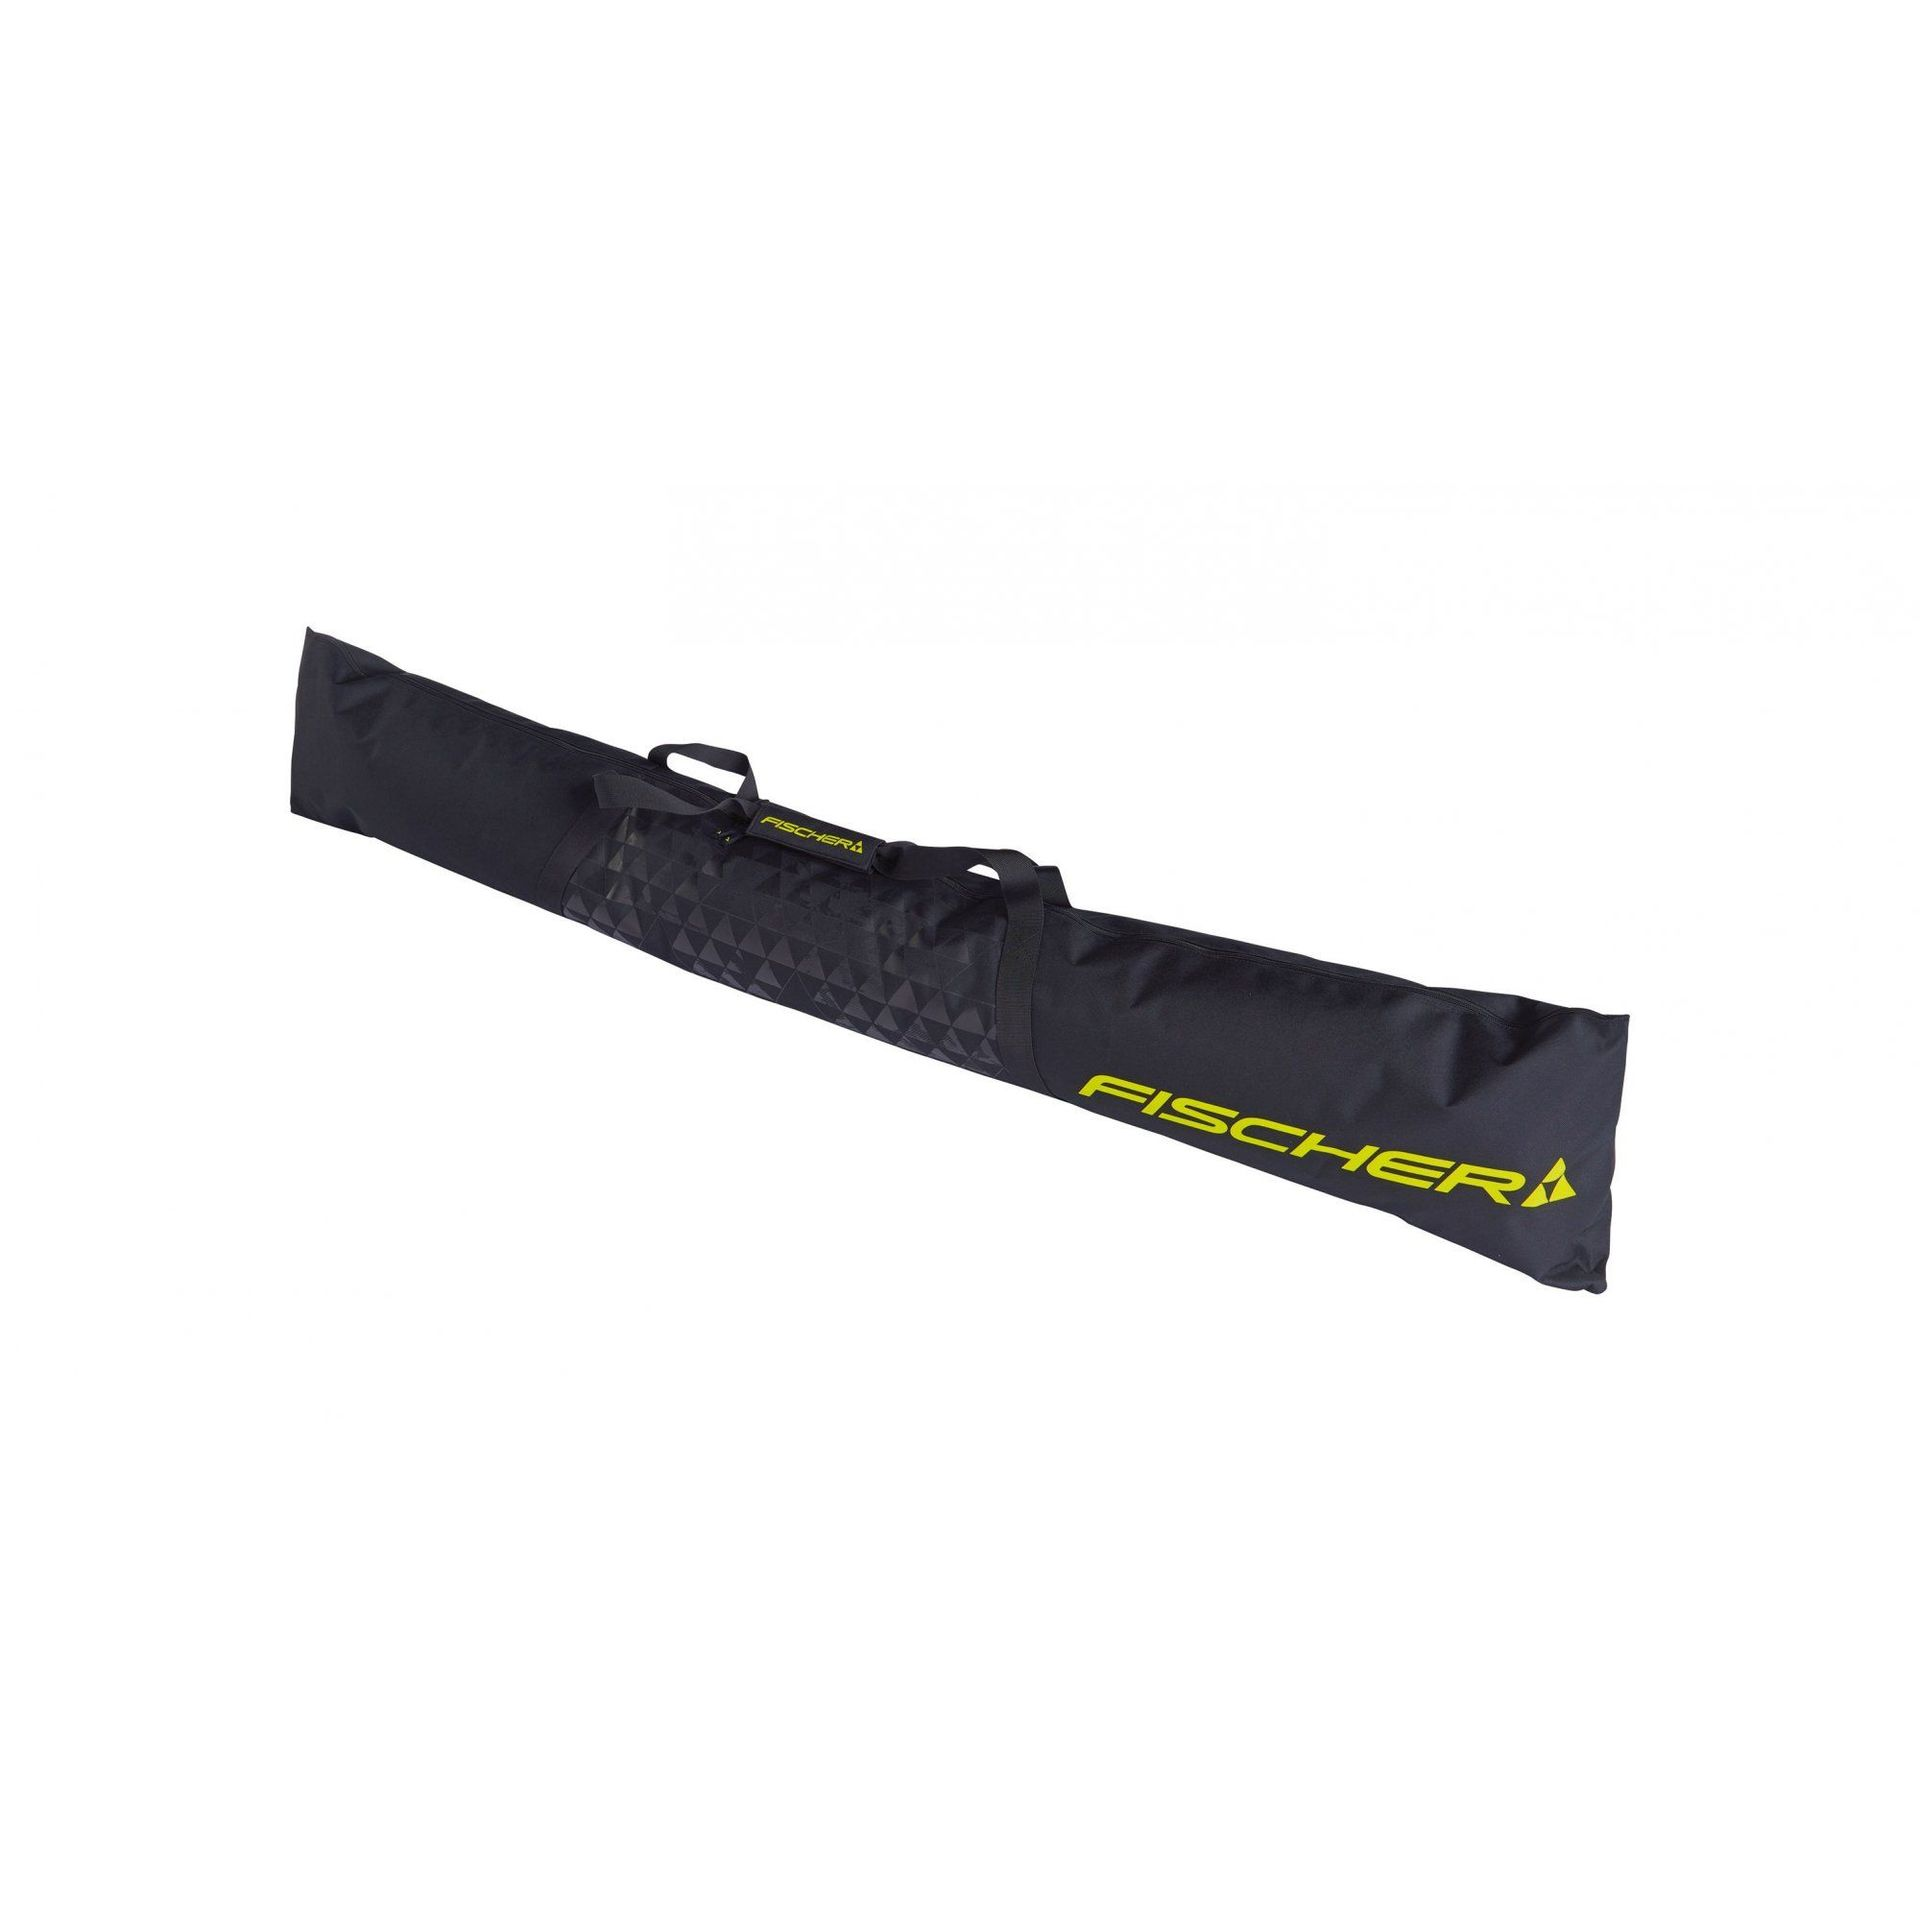 POKROWIEC NA NARTY FISCHER SKICASE 1P ALPINE ECO 175 BLACK|YELLOW Z10619